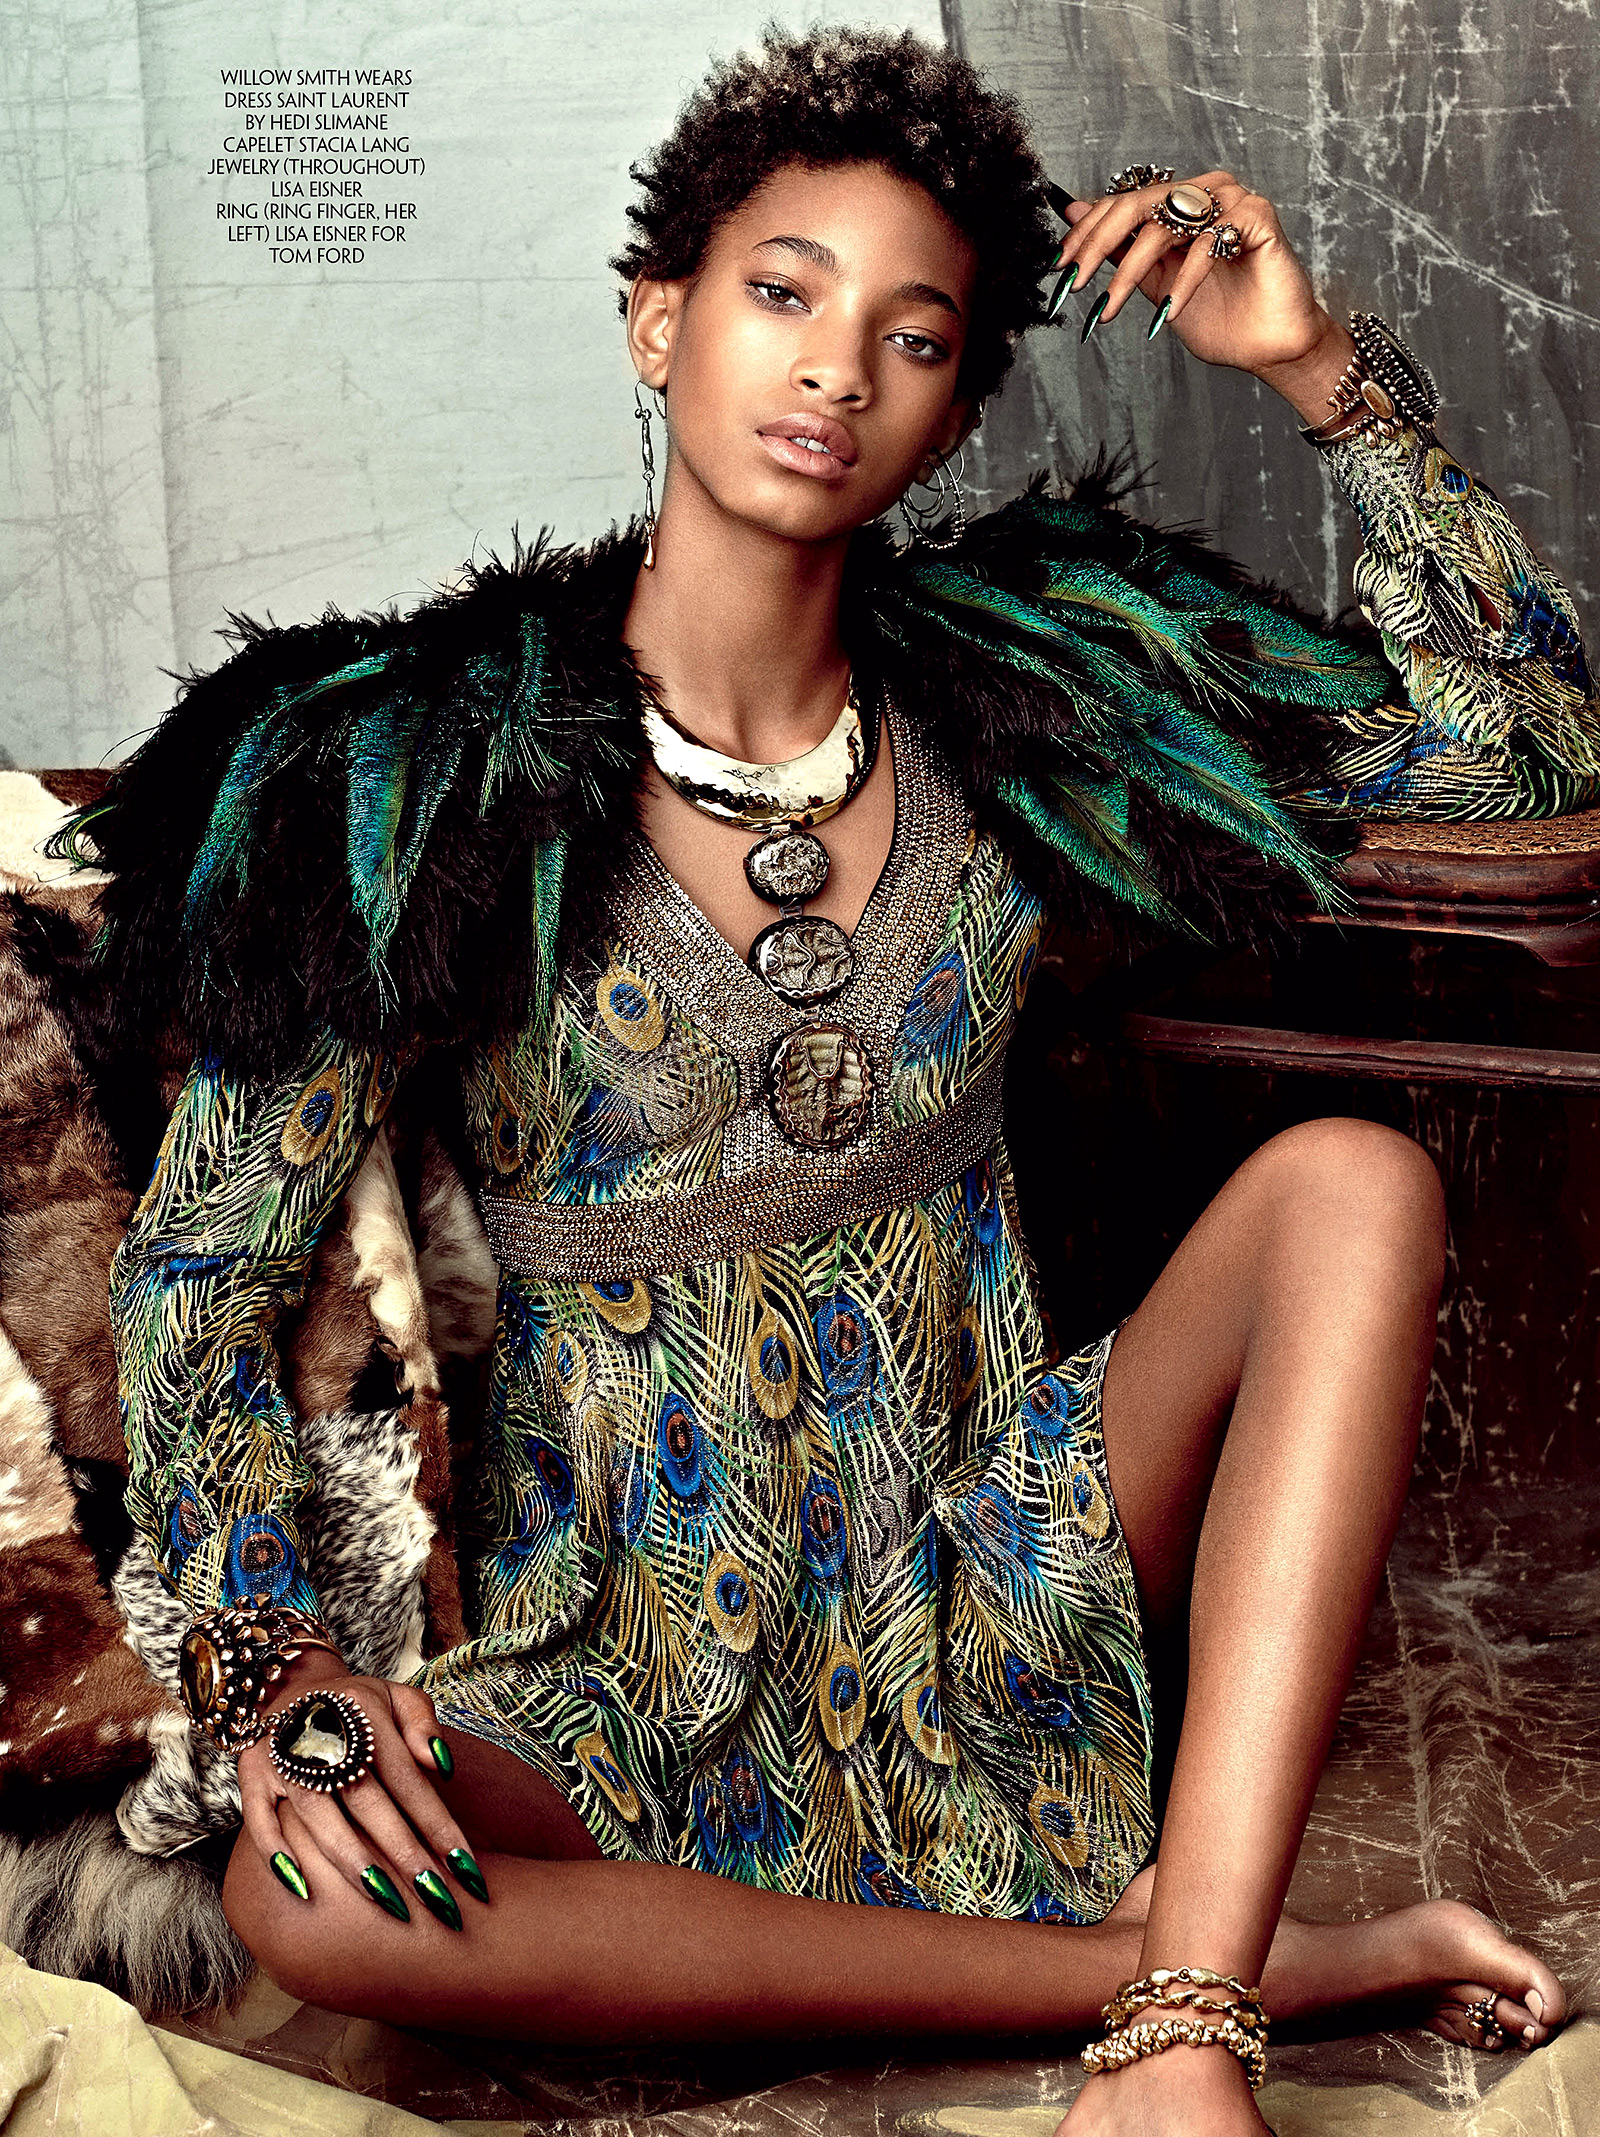 1425482439_willow-smith-cr-fashion-book-zoom.jpg